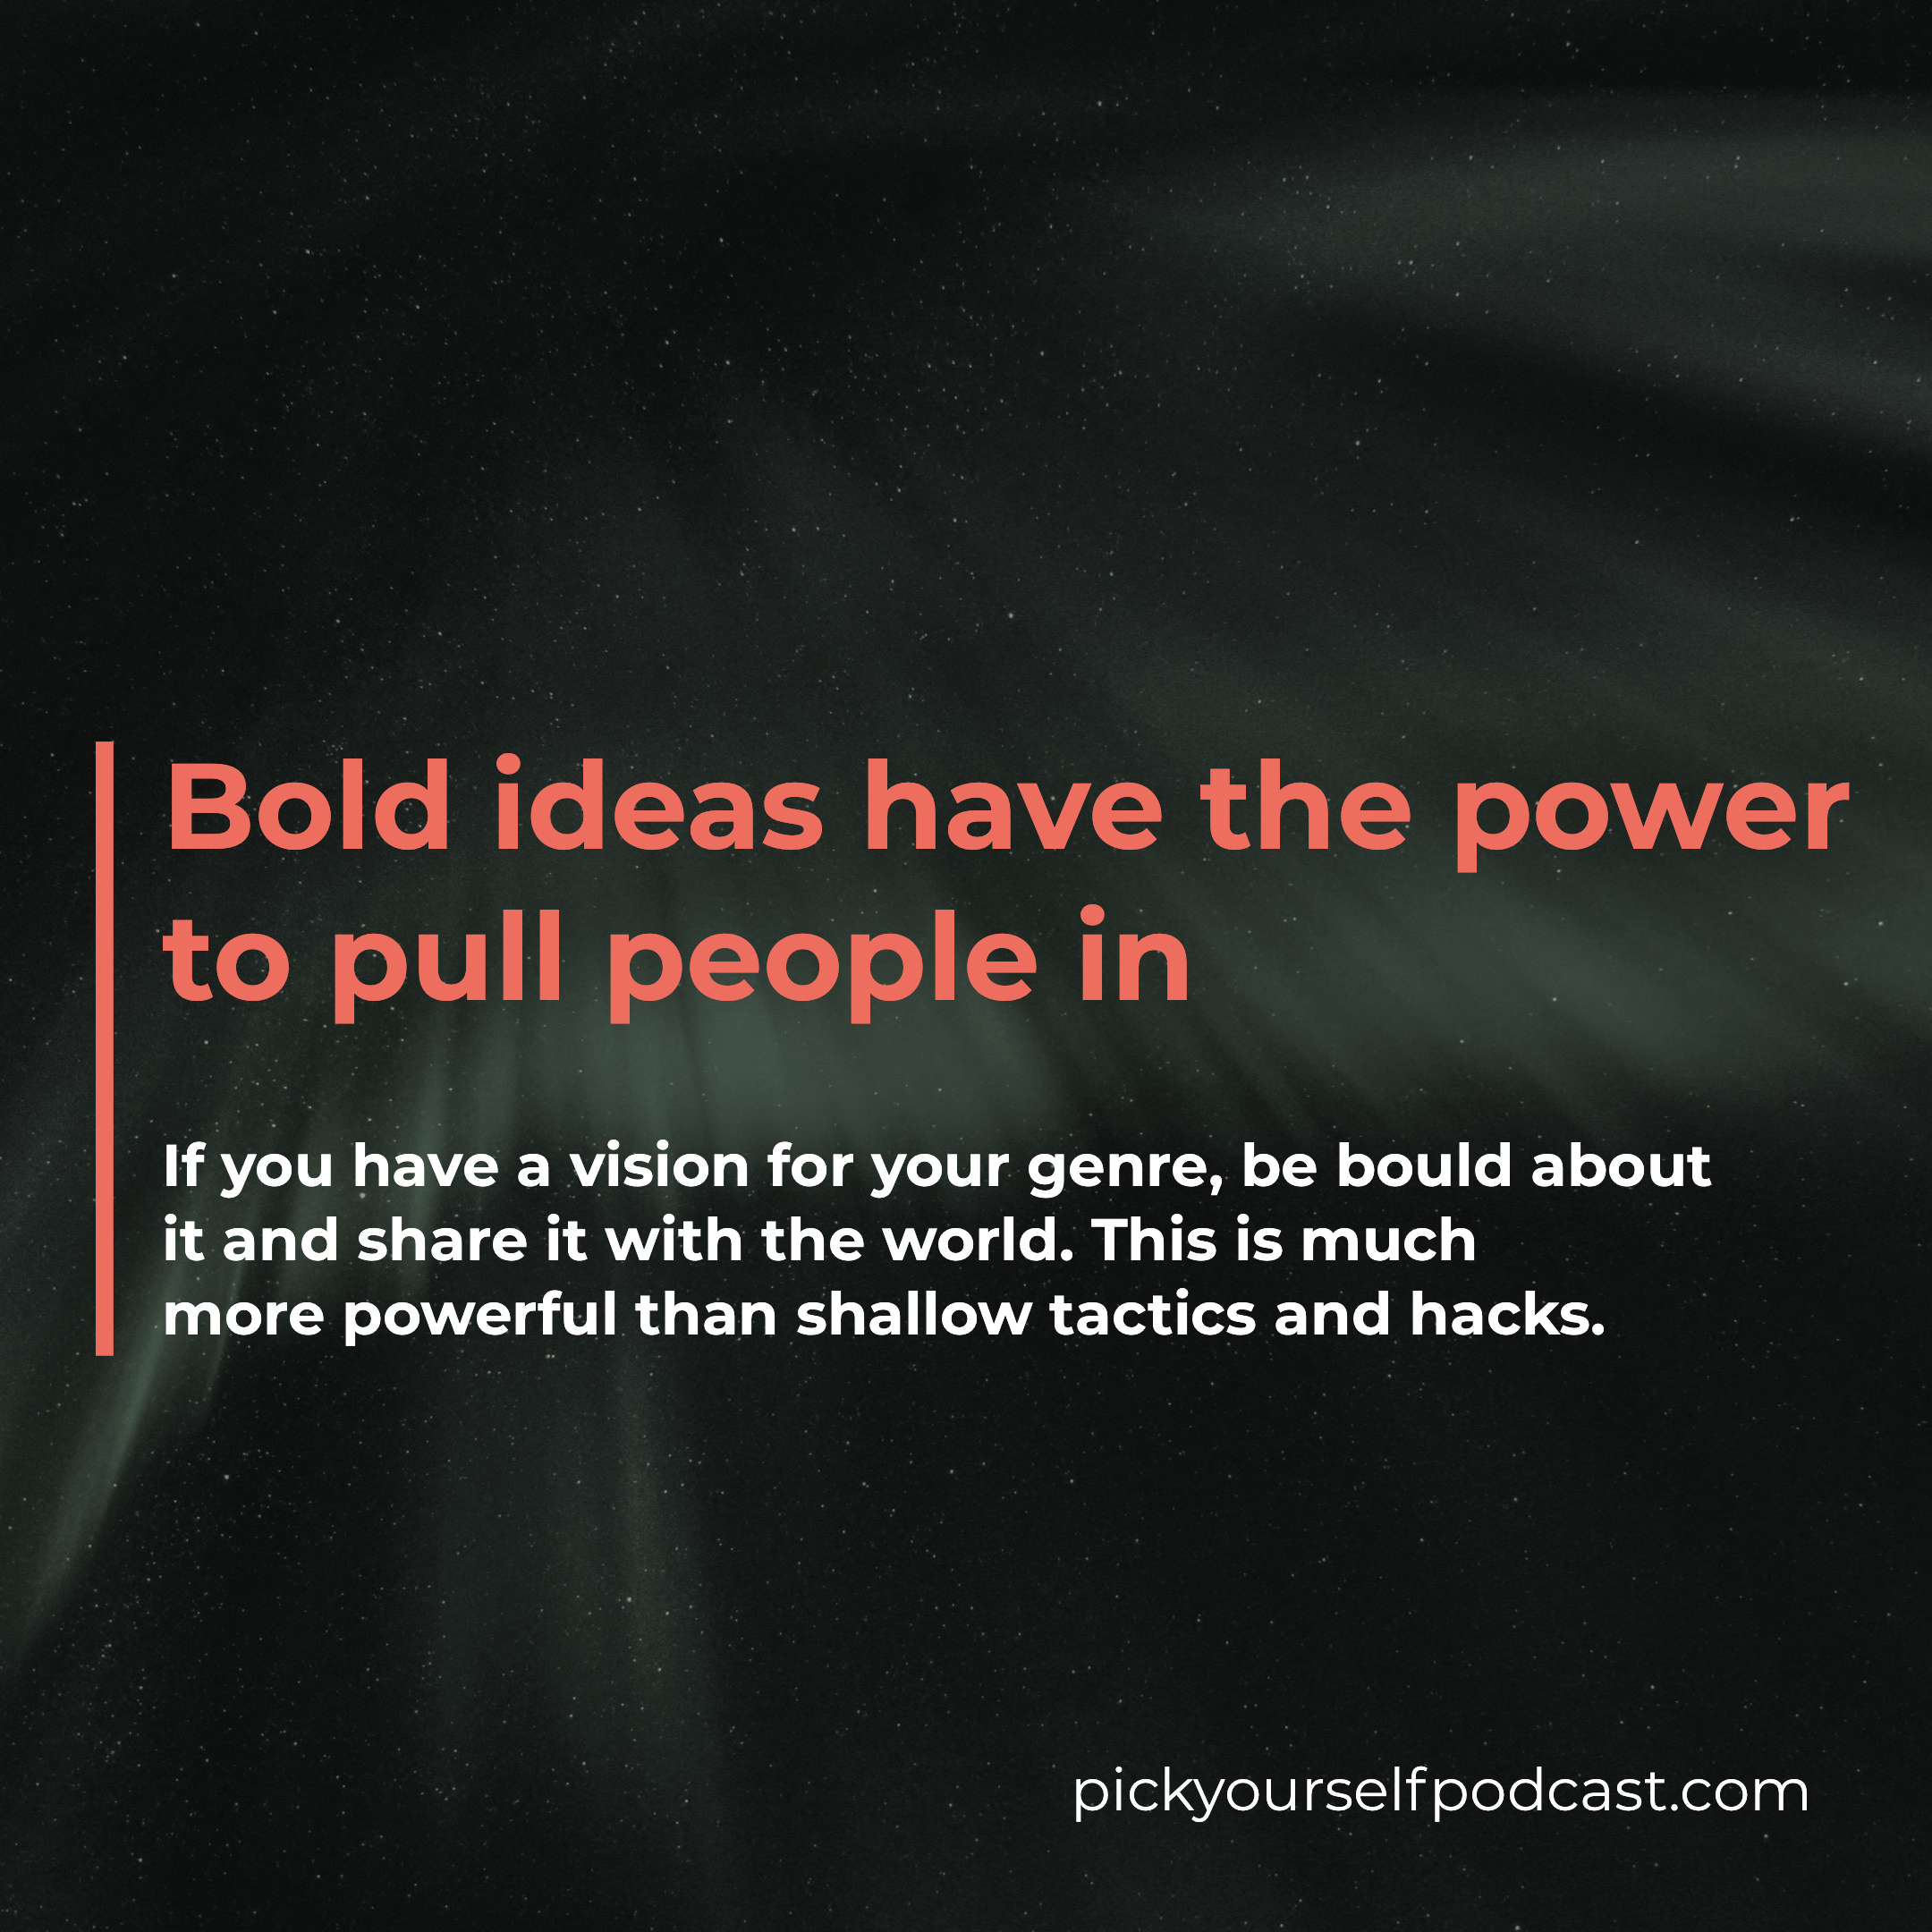 Bold ideas have the power to pull people in. Becoming a thought-leader in your space is great music marketing.